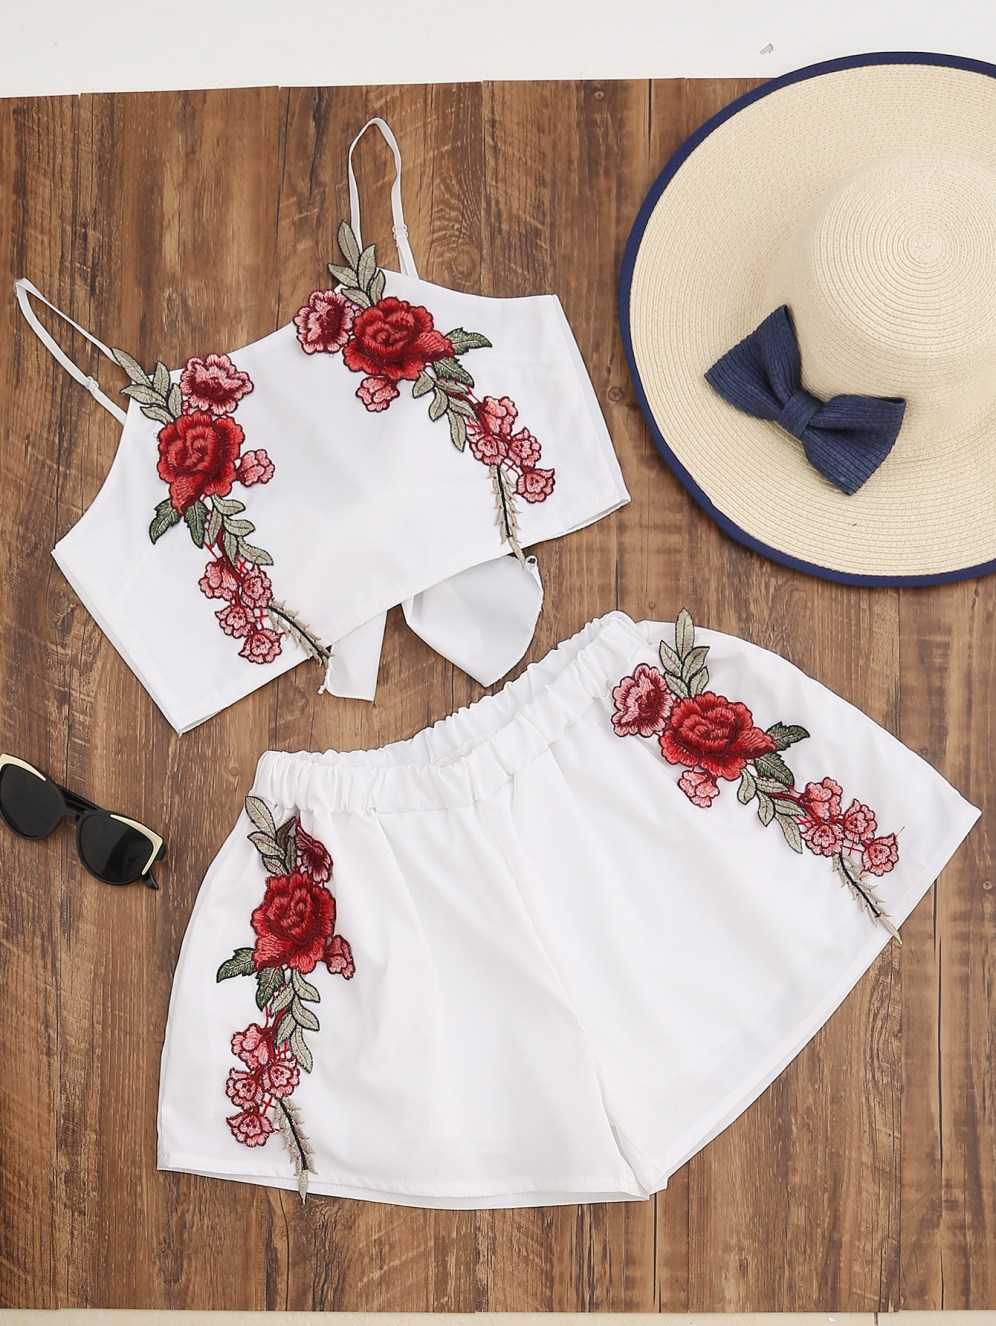 http://us.shein.com/Flower-Applique-Tie-Back-Cami-Top-With-Shorts-p-350502-cat-1780.html